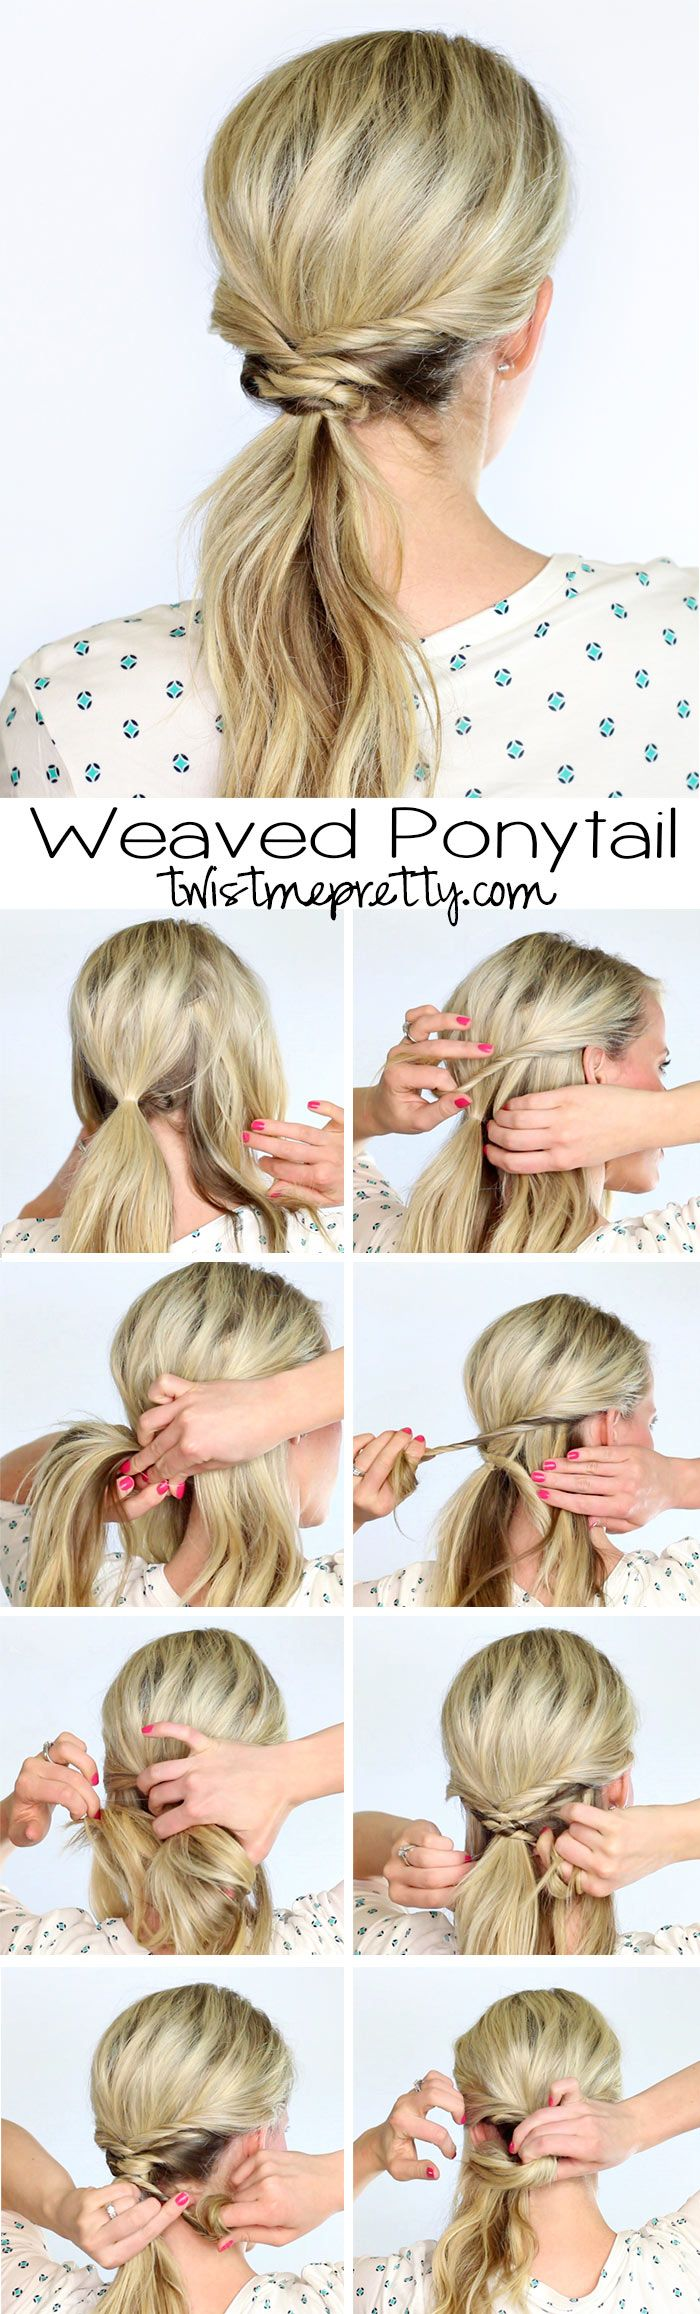 You'll need a few clear elastics and three minutes max to pull this beautiful weaved ponytail together. Come watch the DIY tutorial at Twist Me Pretty